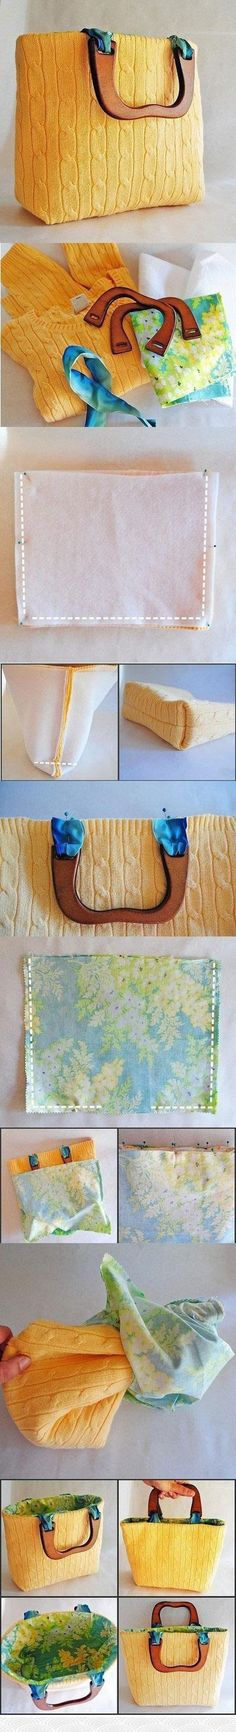 DIY Hand Bag diy crafts diy crafts craft ideas diy ideas easy crafts easy diy